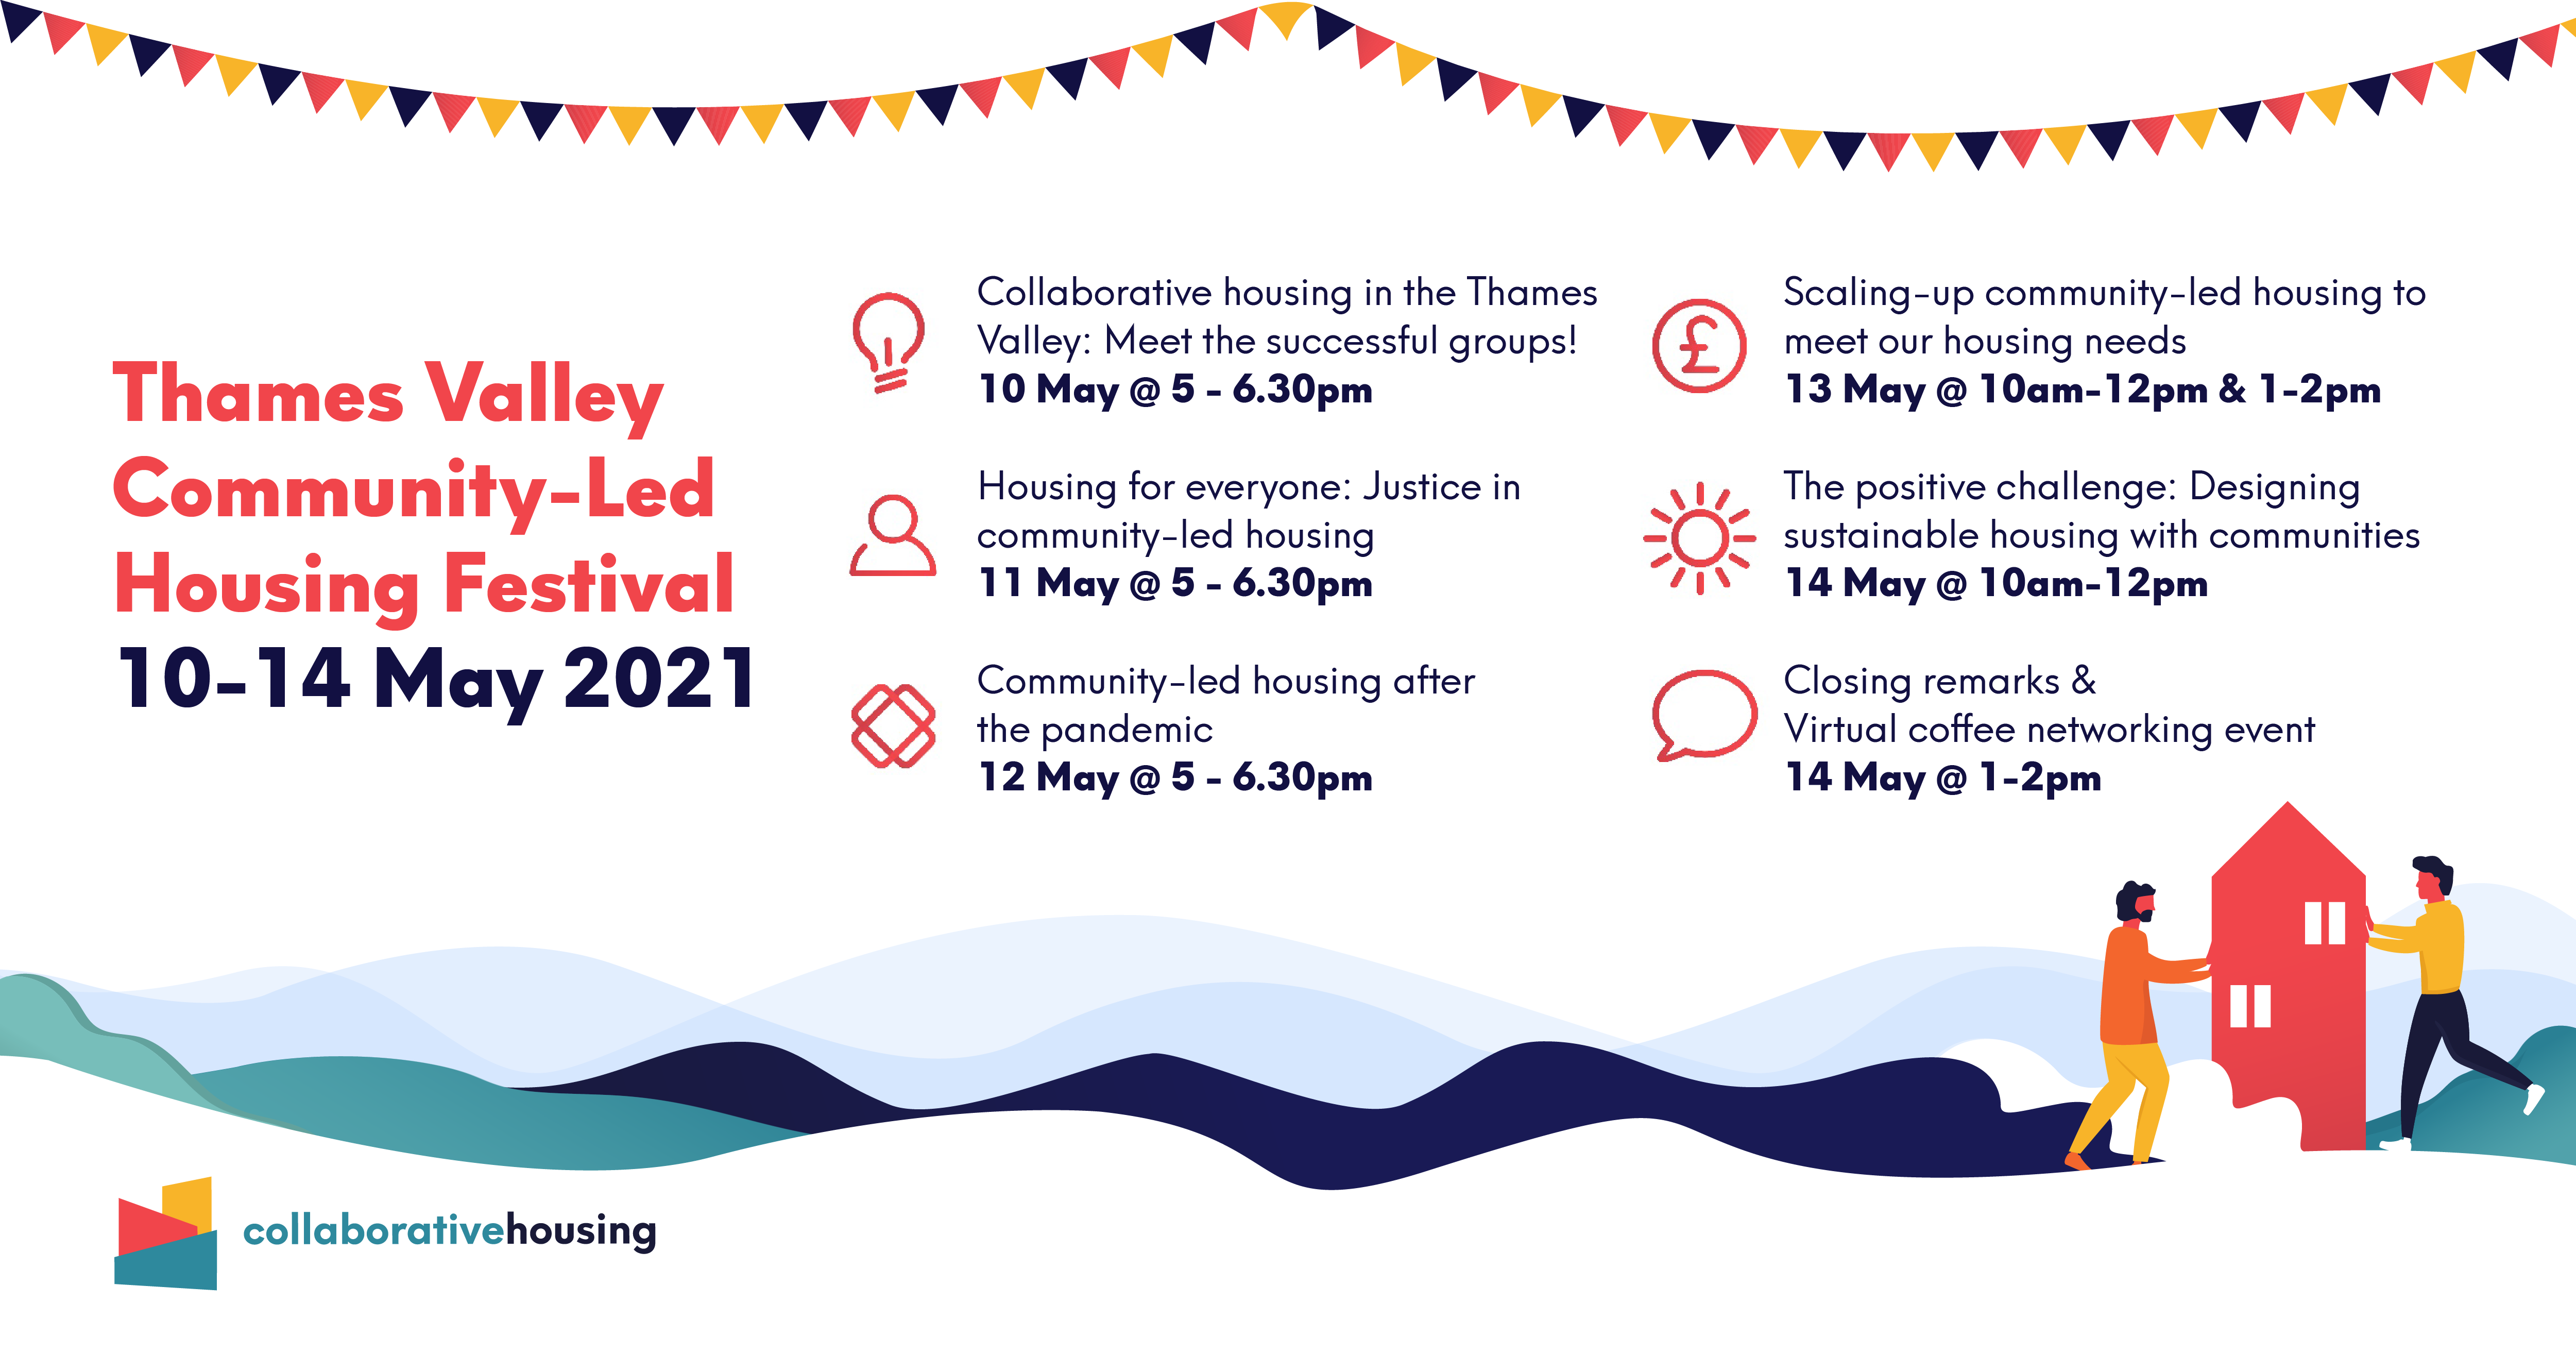 Thames Valley Community-led Housing Festival: 10 -14 May feature